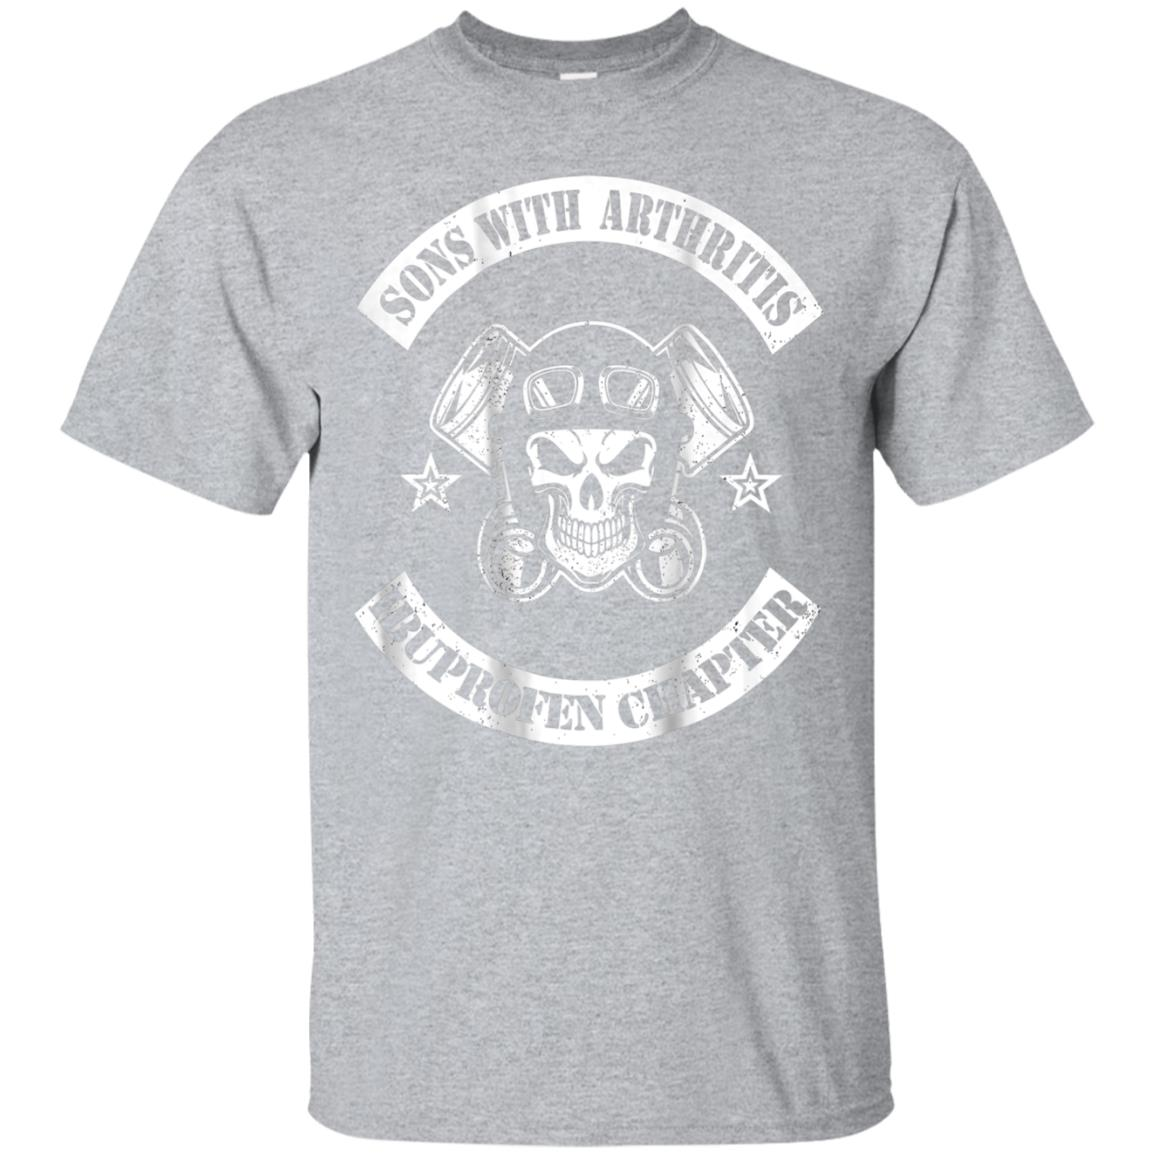 Biker Sons with Arthritis Printed on Back Funny T Shirt 99promocode